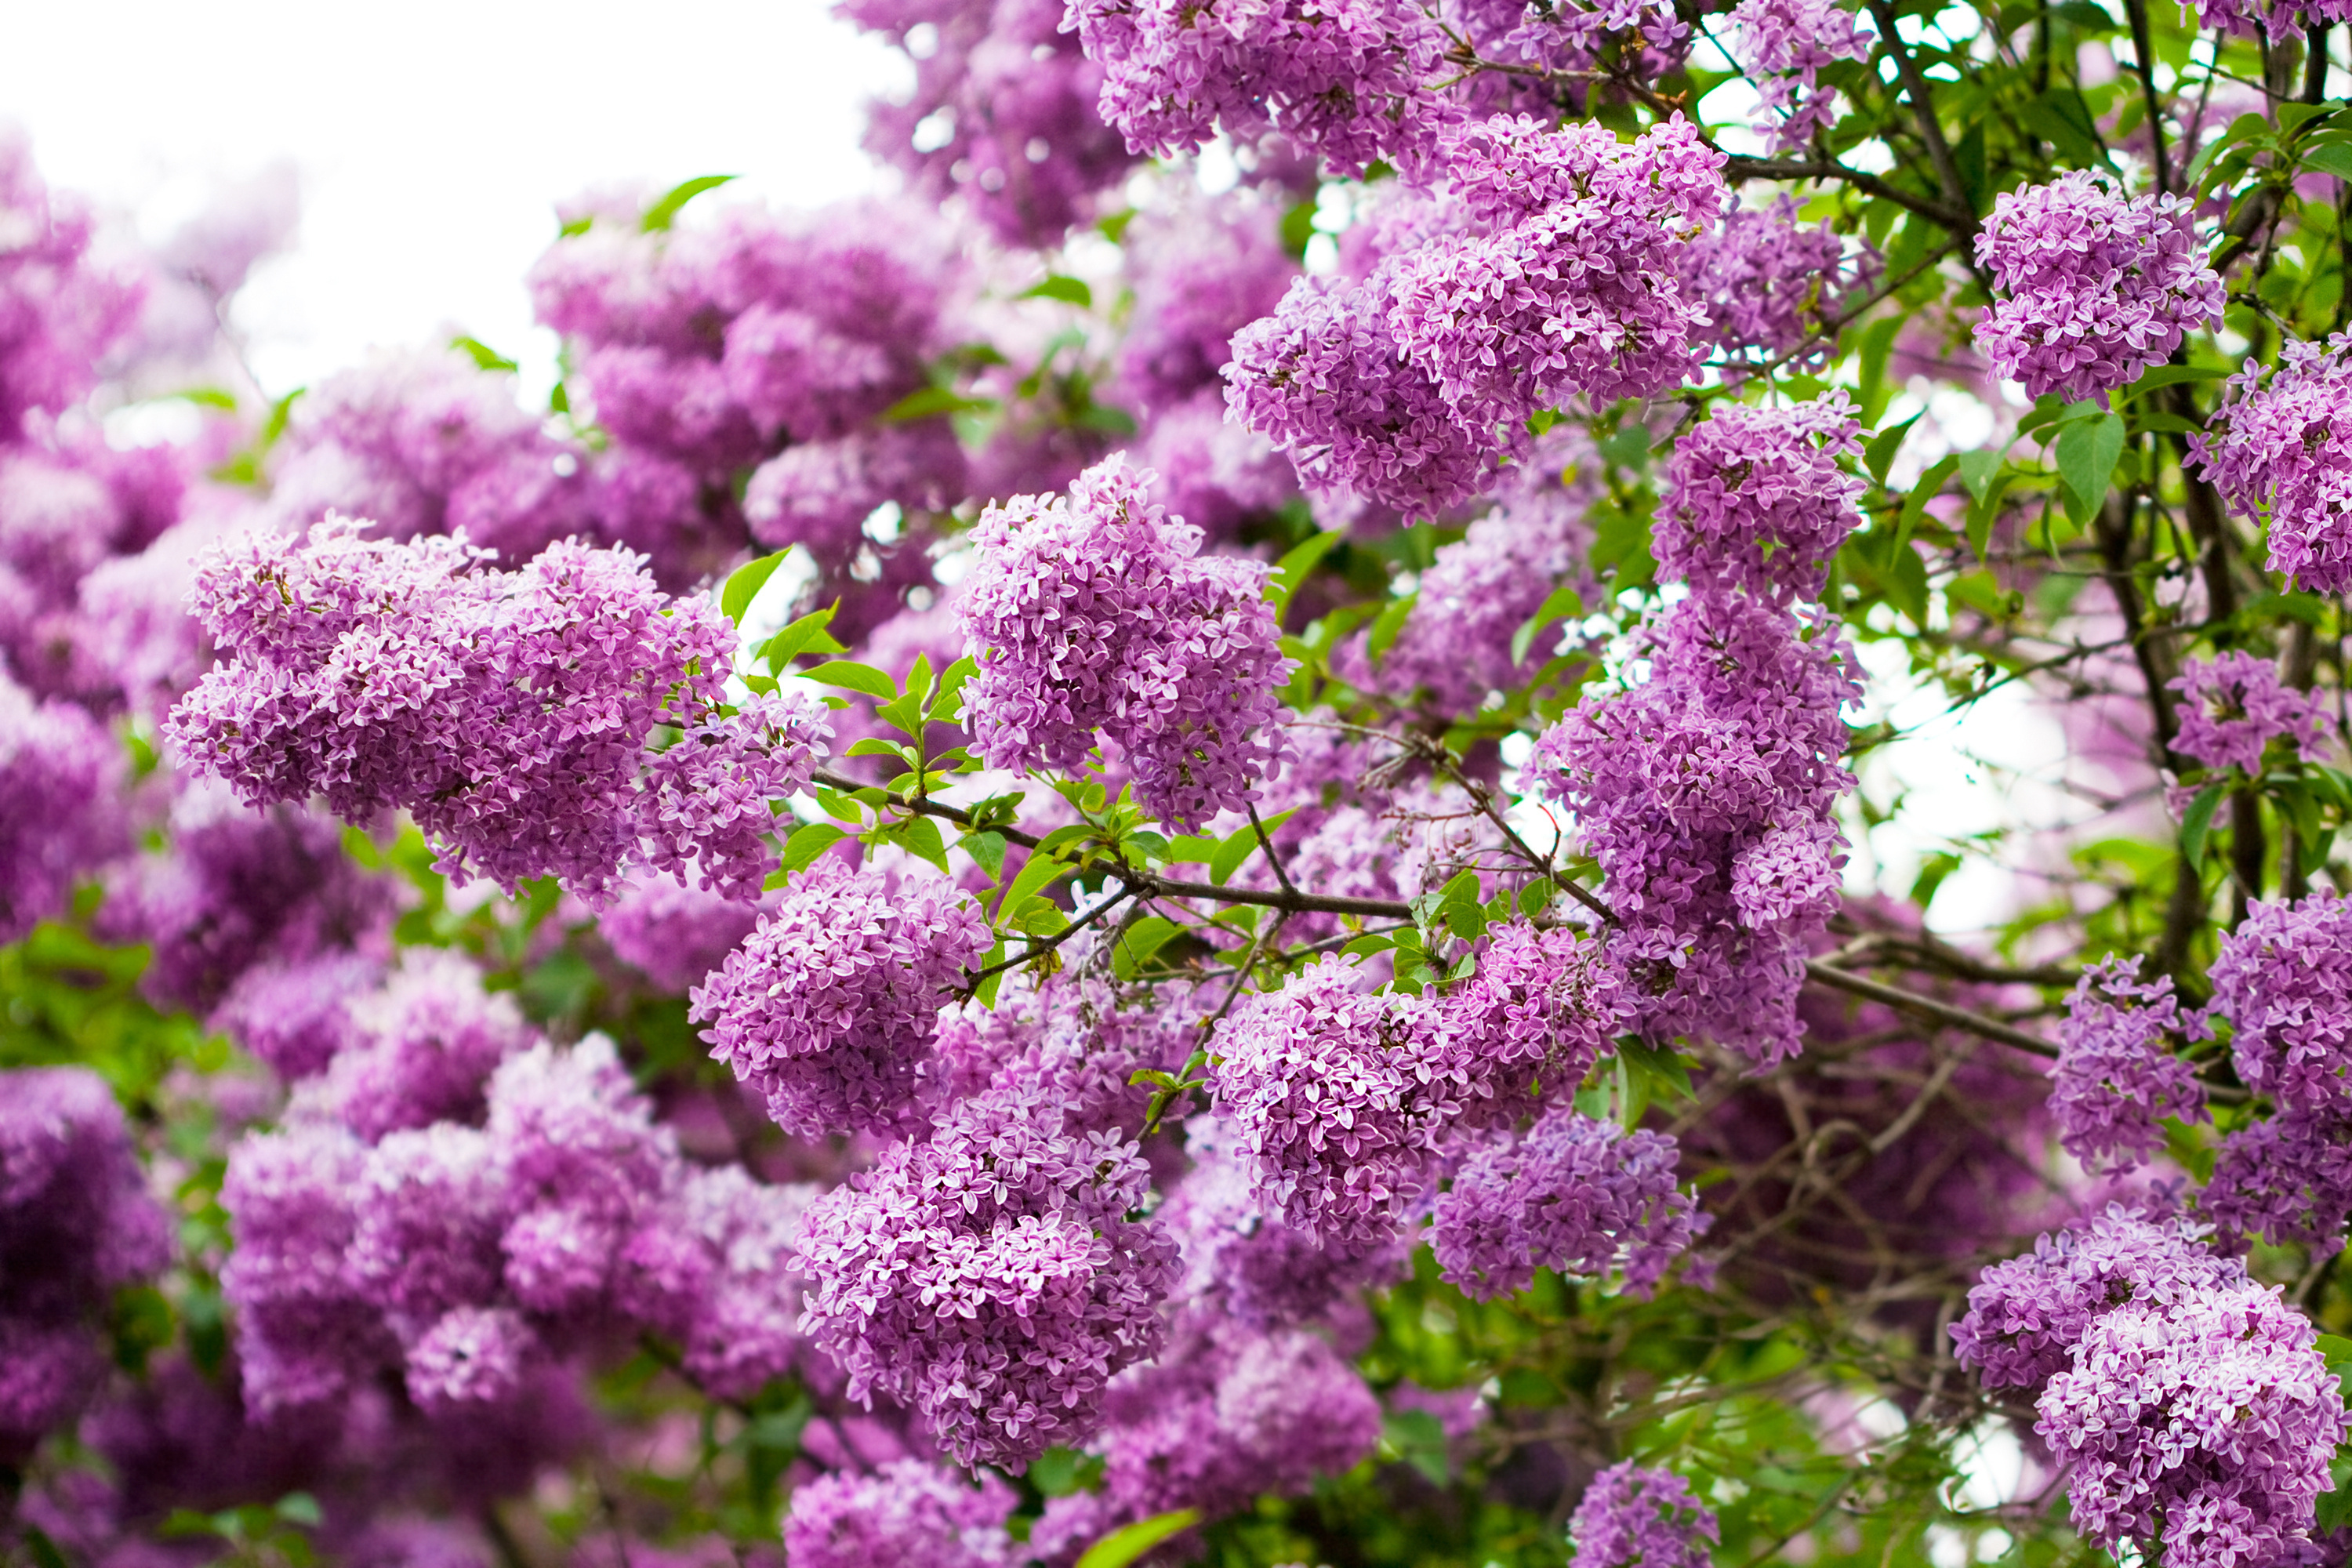 Image: Flowers, lilac, branches, leaves, spring, beauty